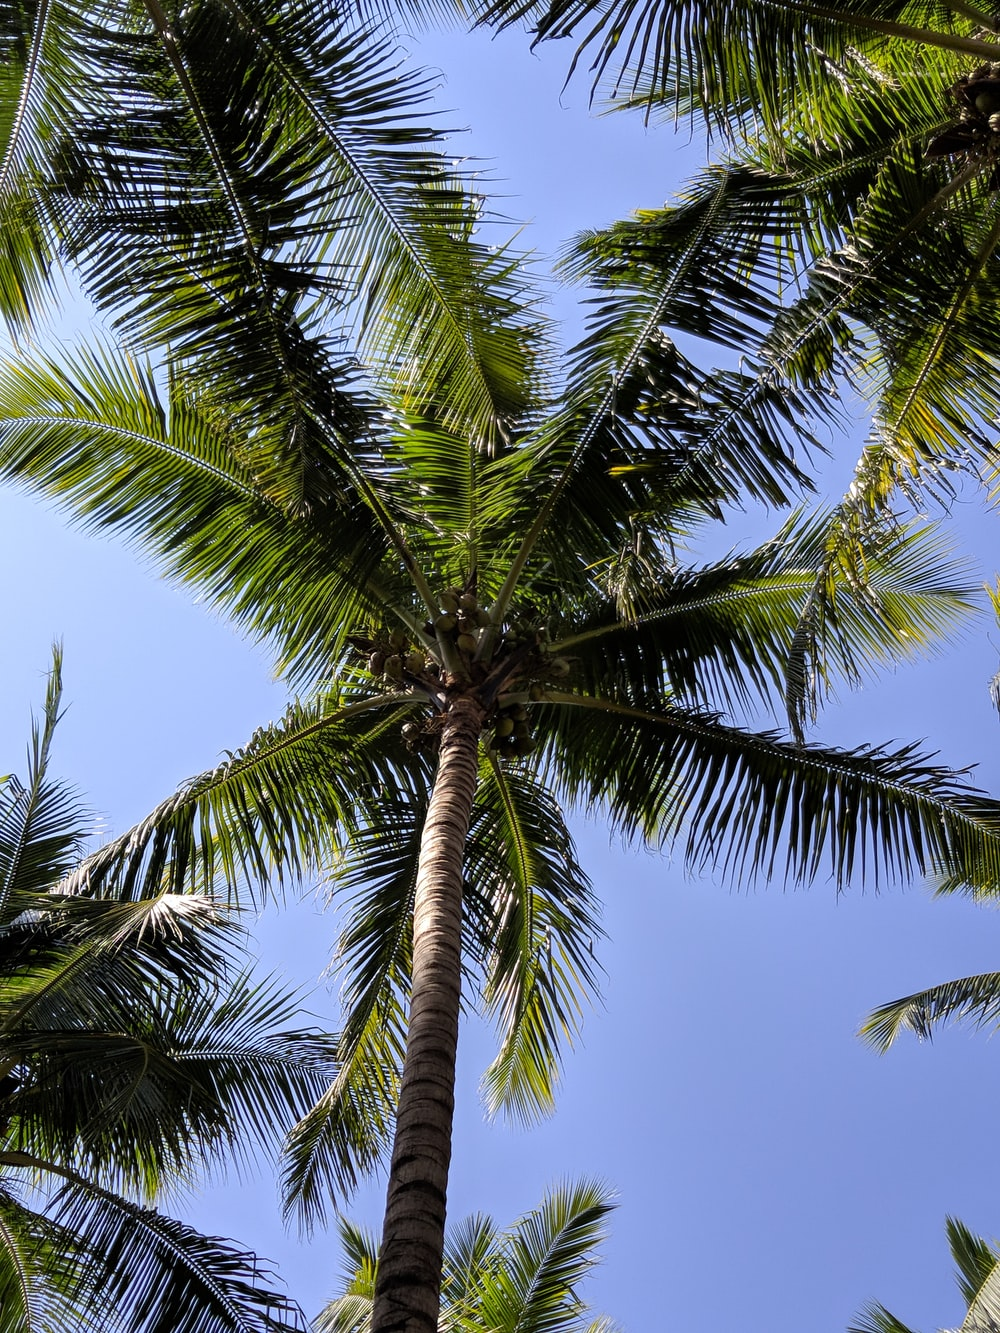 green and black coconut trees under blue sky at daytime